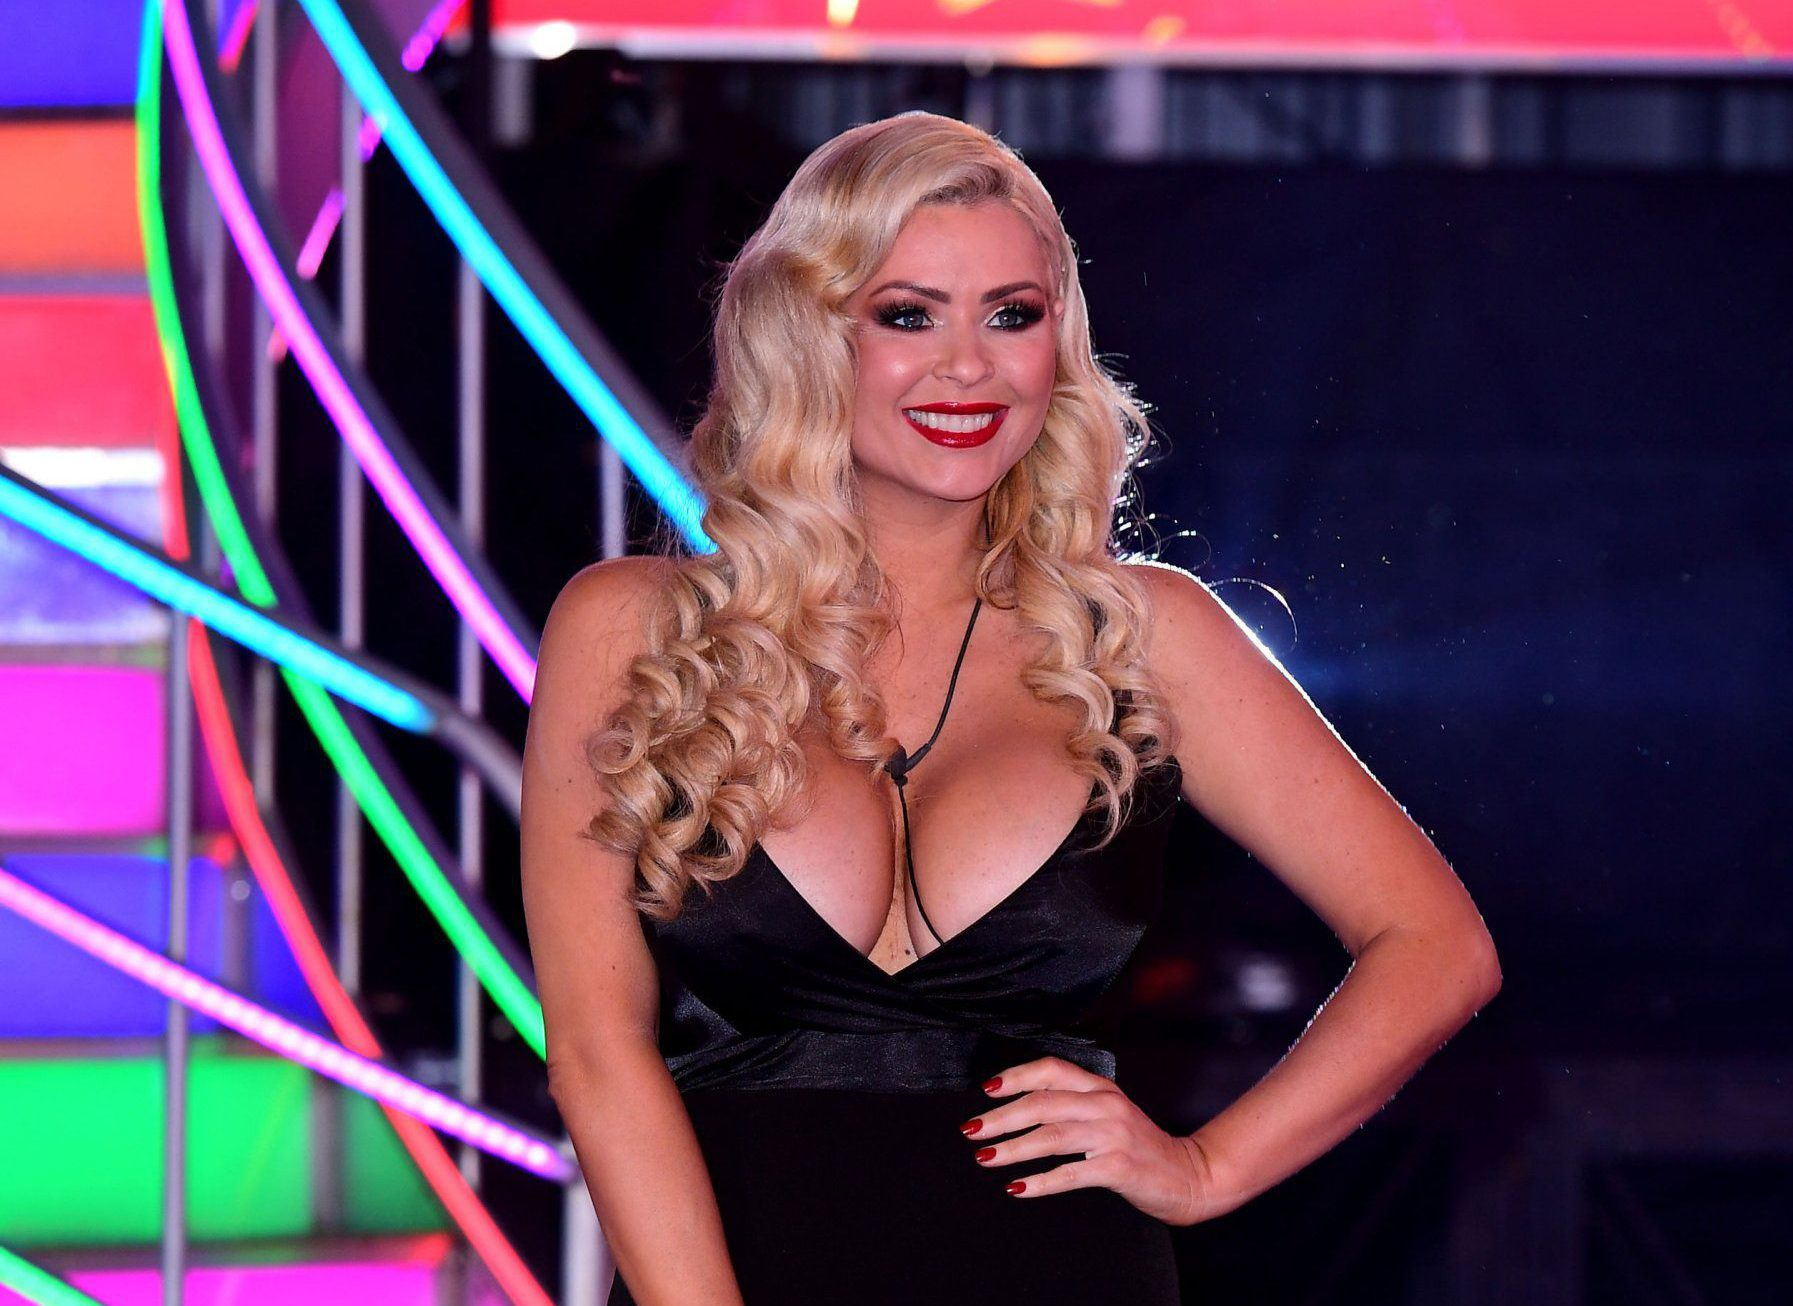 Nicola McLean is evicted in fifth place during the Big Brother 2017 final at Elstree Studios in Borehamwood, Hertfordshire. PRESS ASSOCIATION Photo. Picture date: Friday February 3, 2017. See PA story SHOWBIZ CBB. Photo credit should read: Ian West/PA Wire